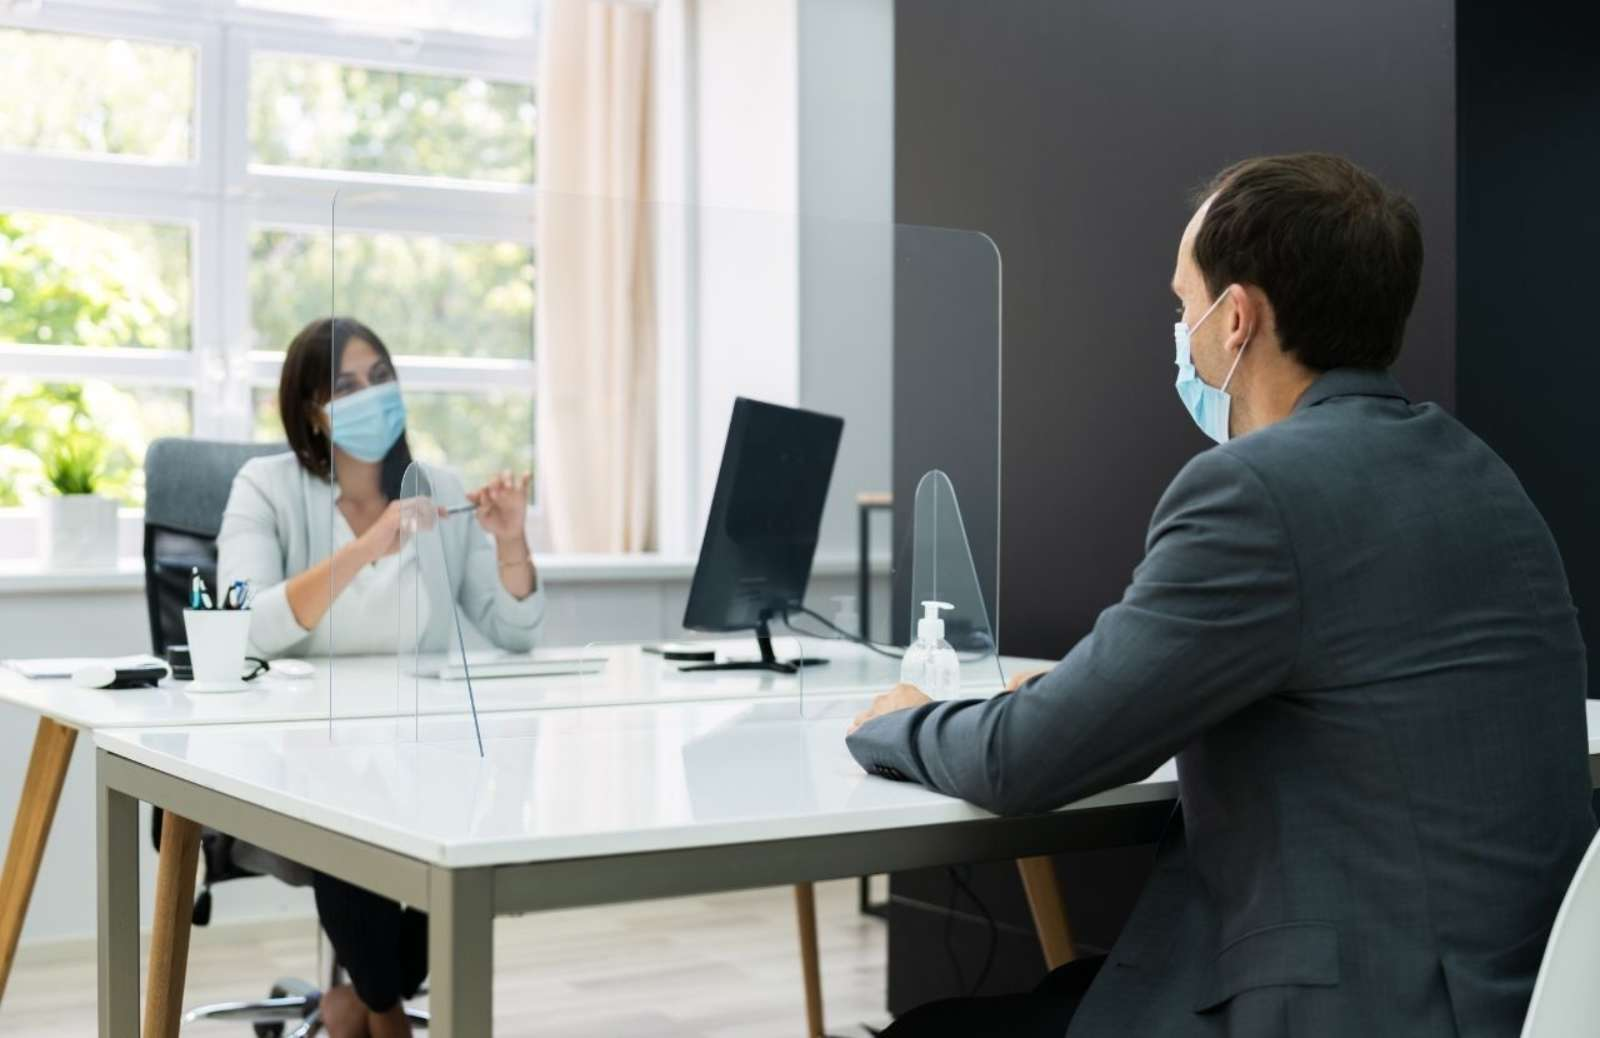 Woman and man sitting across a table from each other wearing medical masks